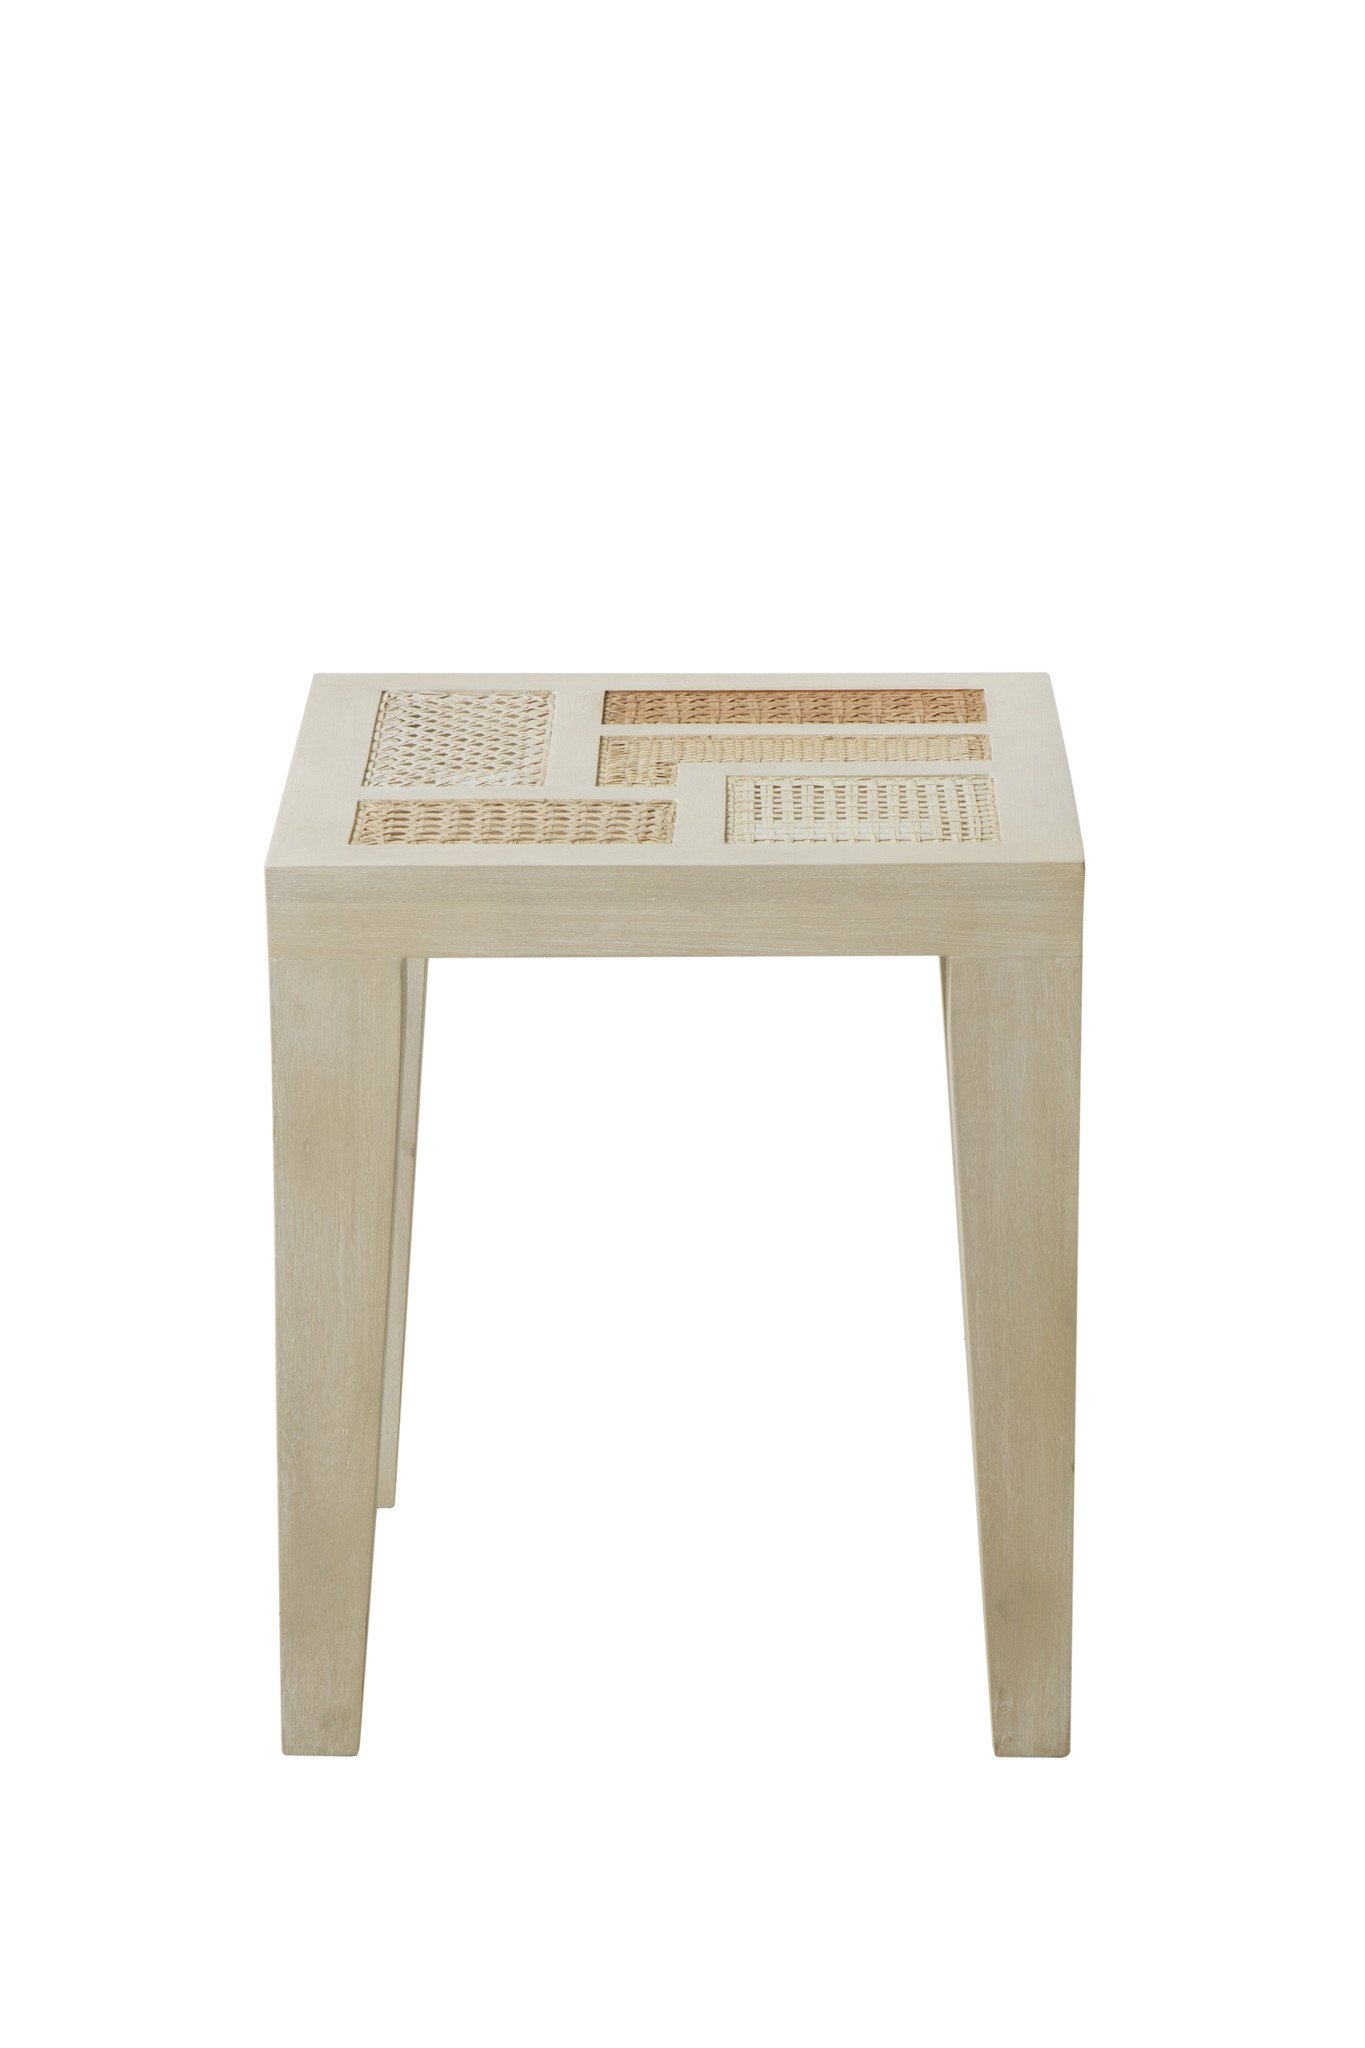 basilisa stool accent table ito kish living dna departures arrivals west elm sconce interior design ideas for room black dining chairs and gold bedside lamps leick laurent end